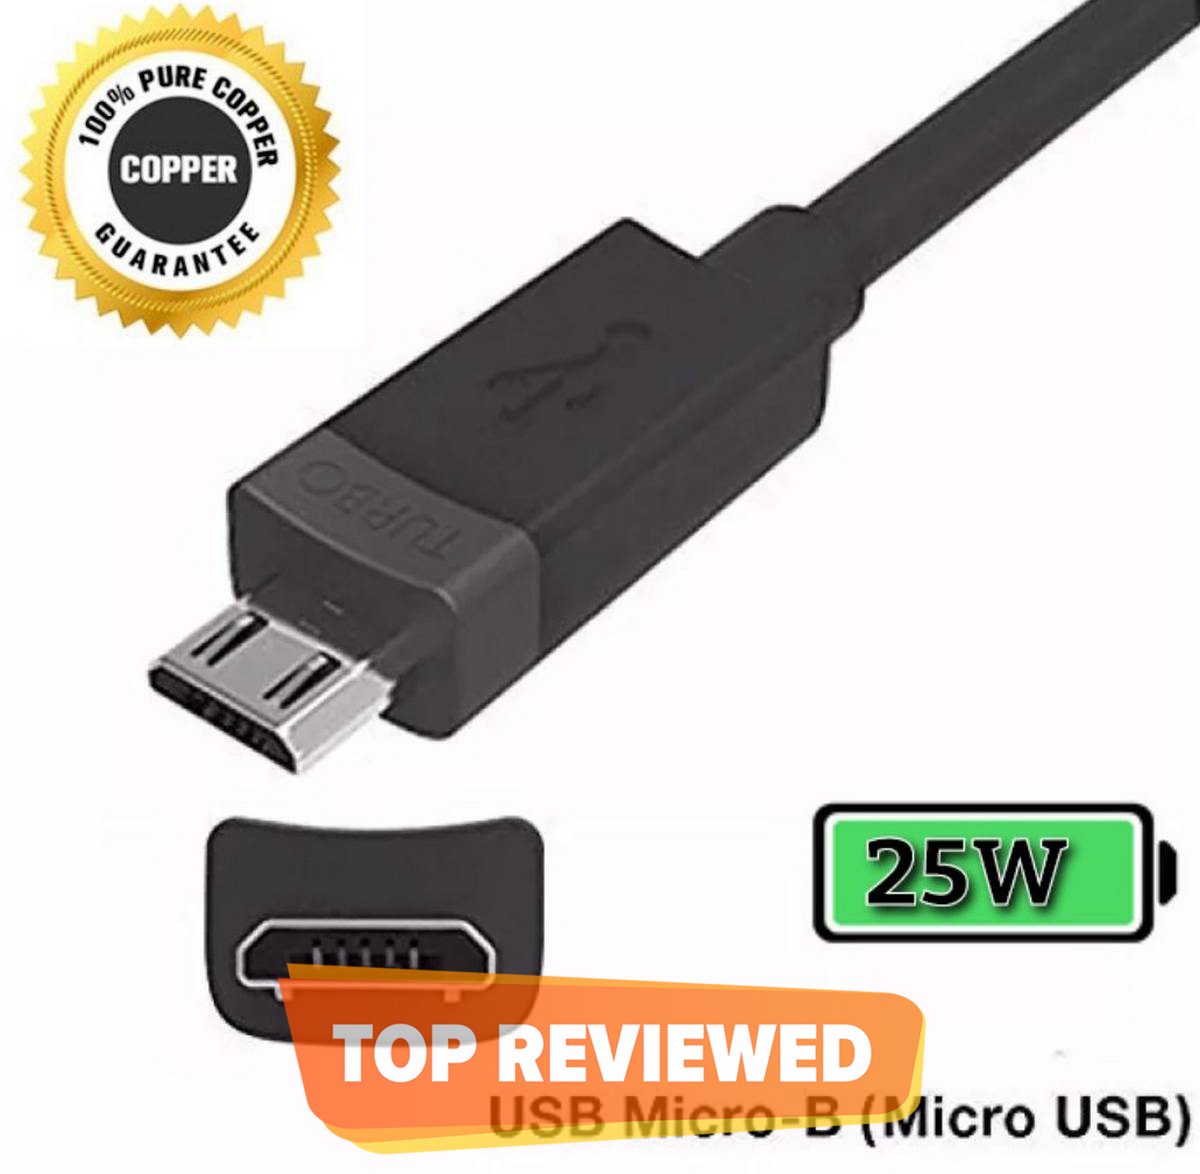 Turbo Charging Data Cable for Android Mobile Phones